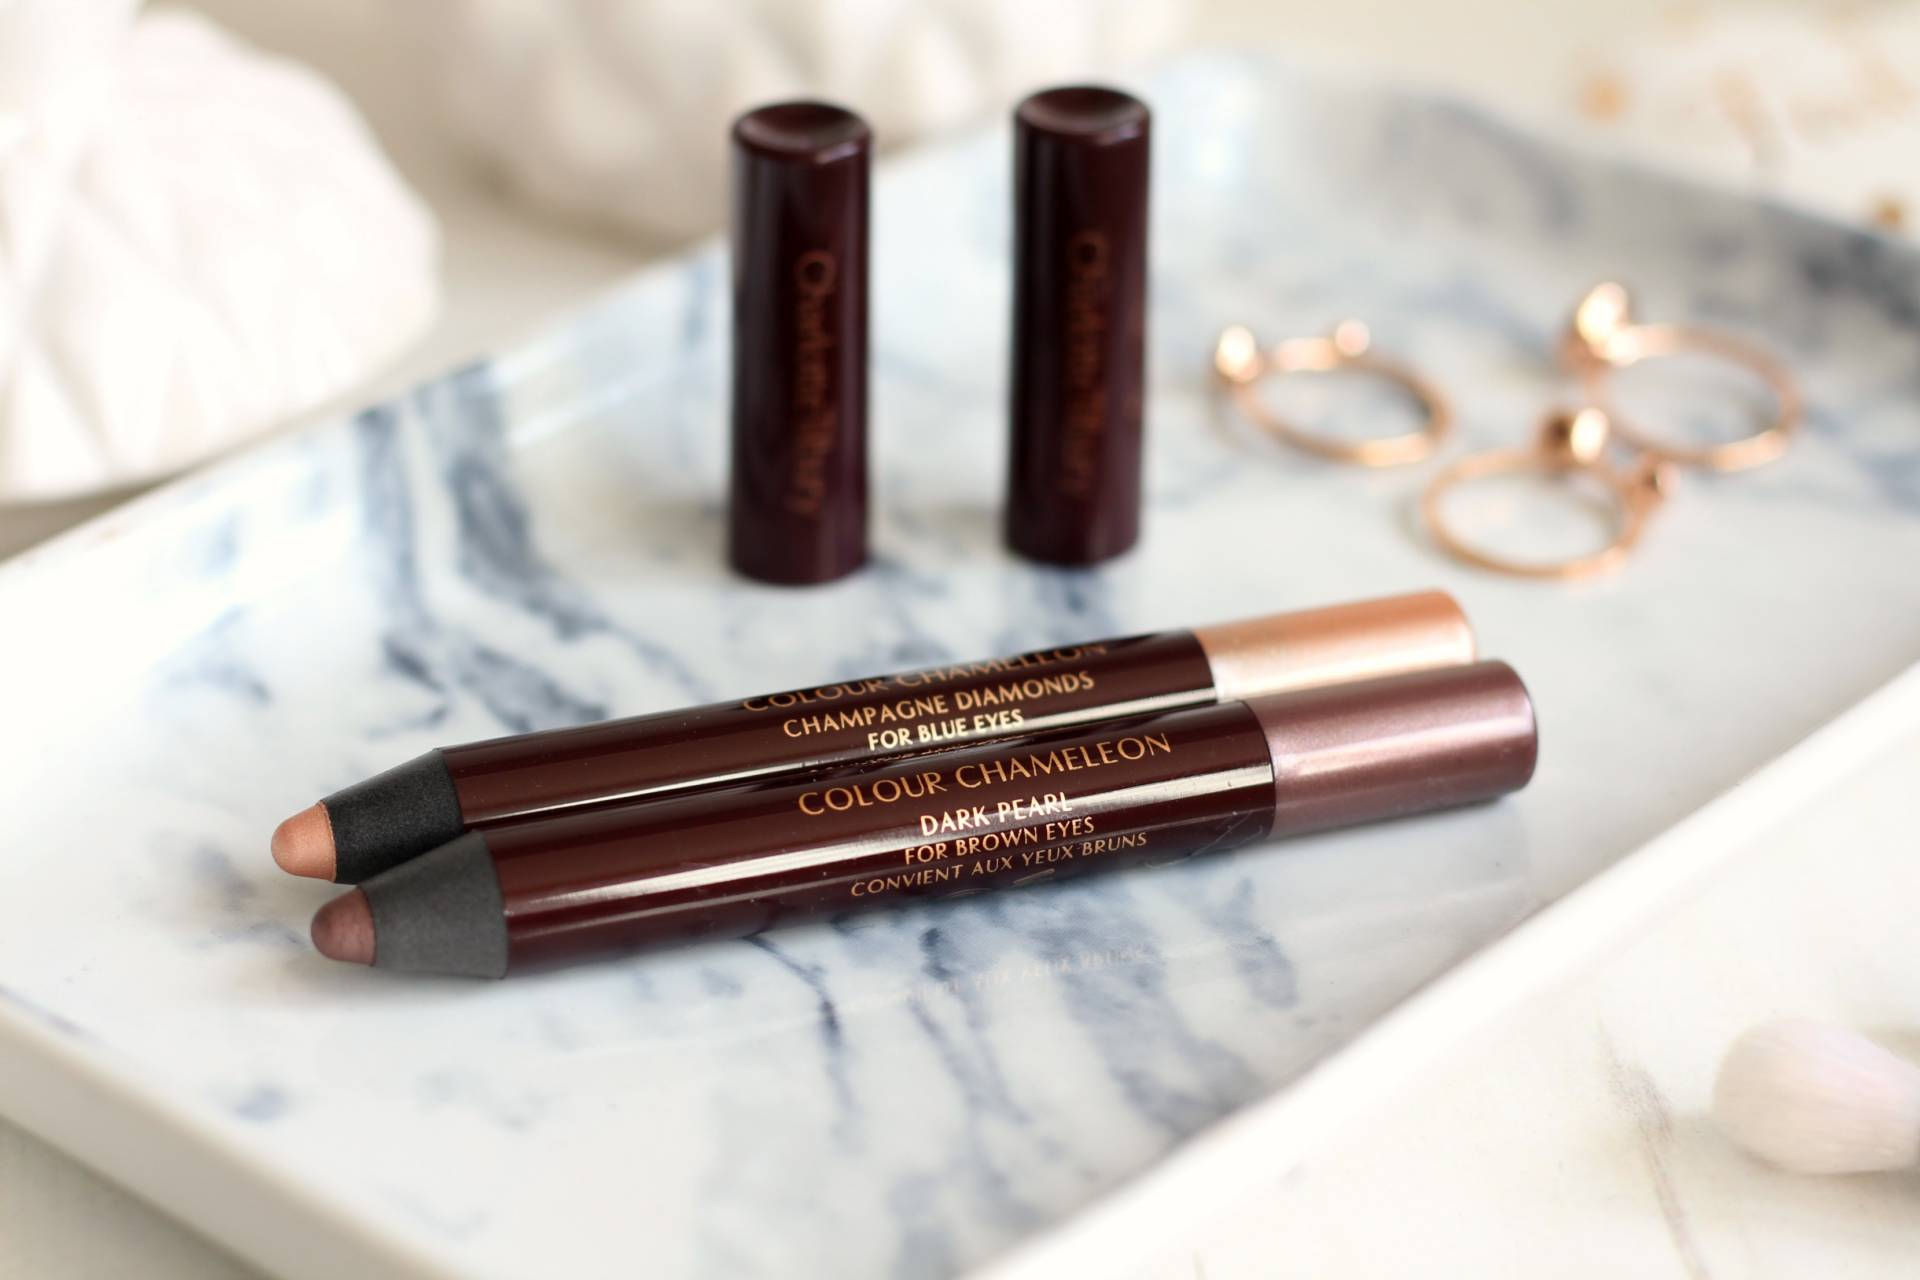 Five reasons you have to try the Charlotte Tilbury Colour Chameleon pencils